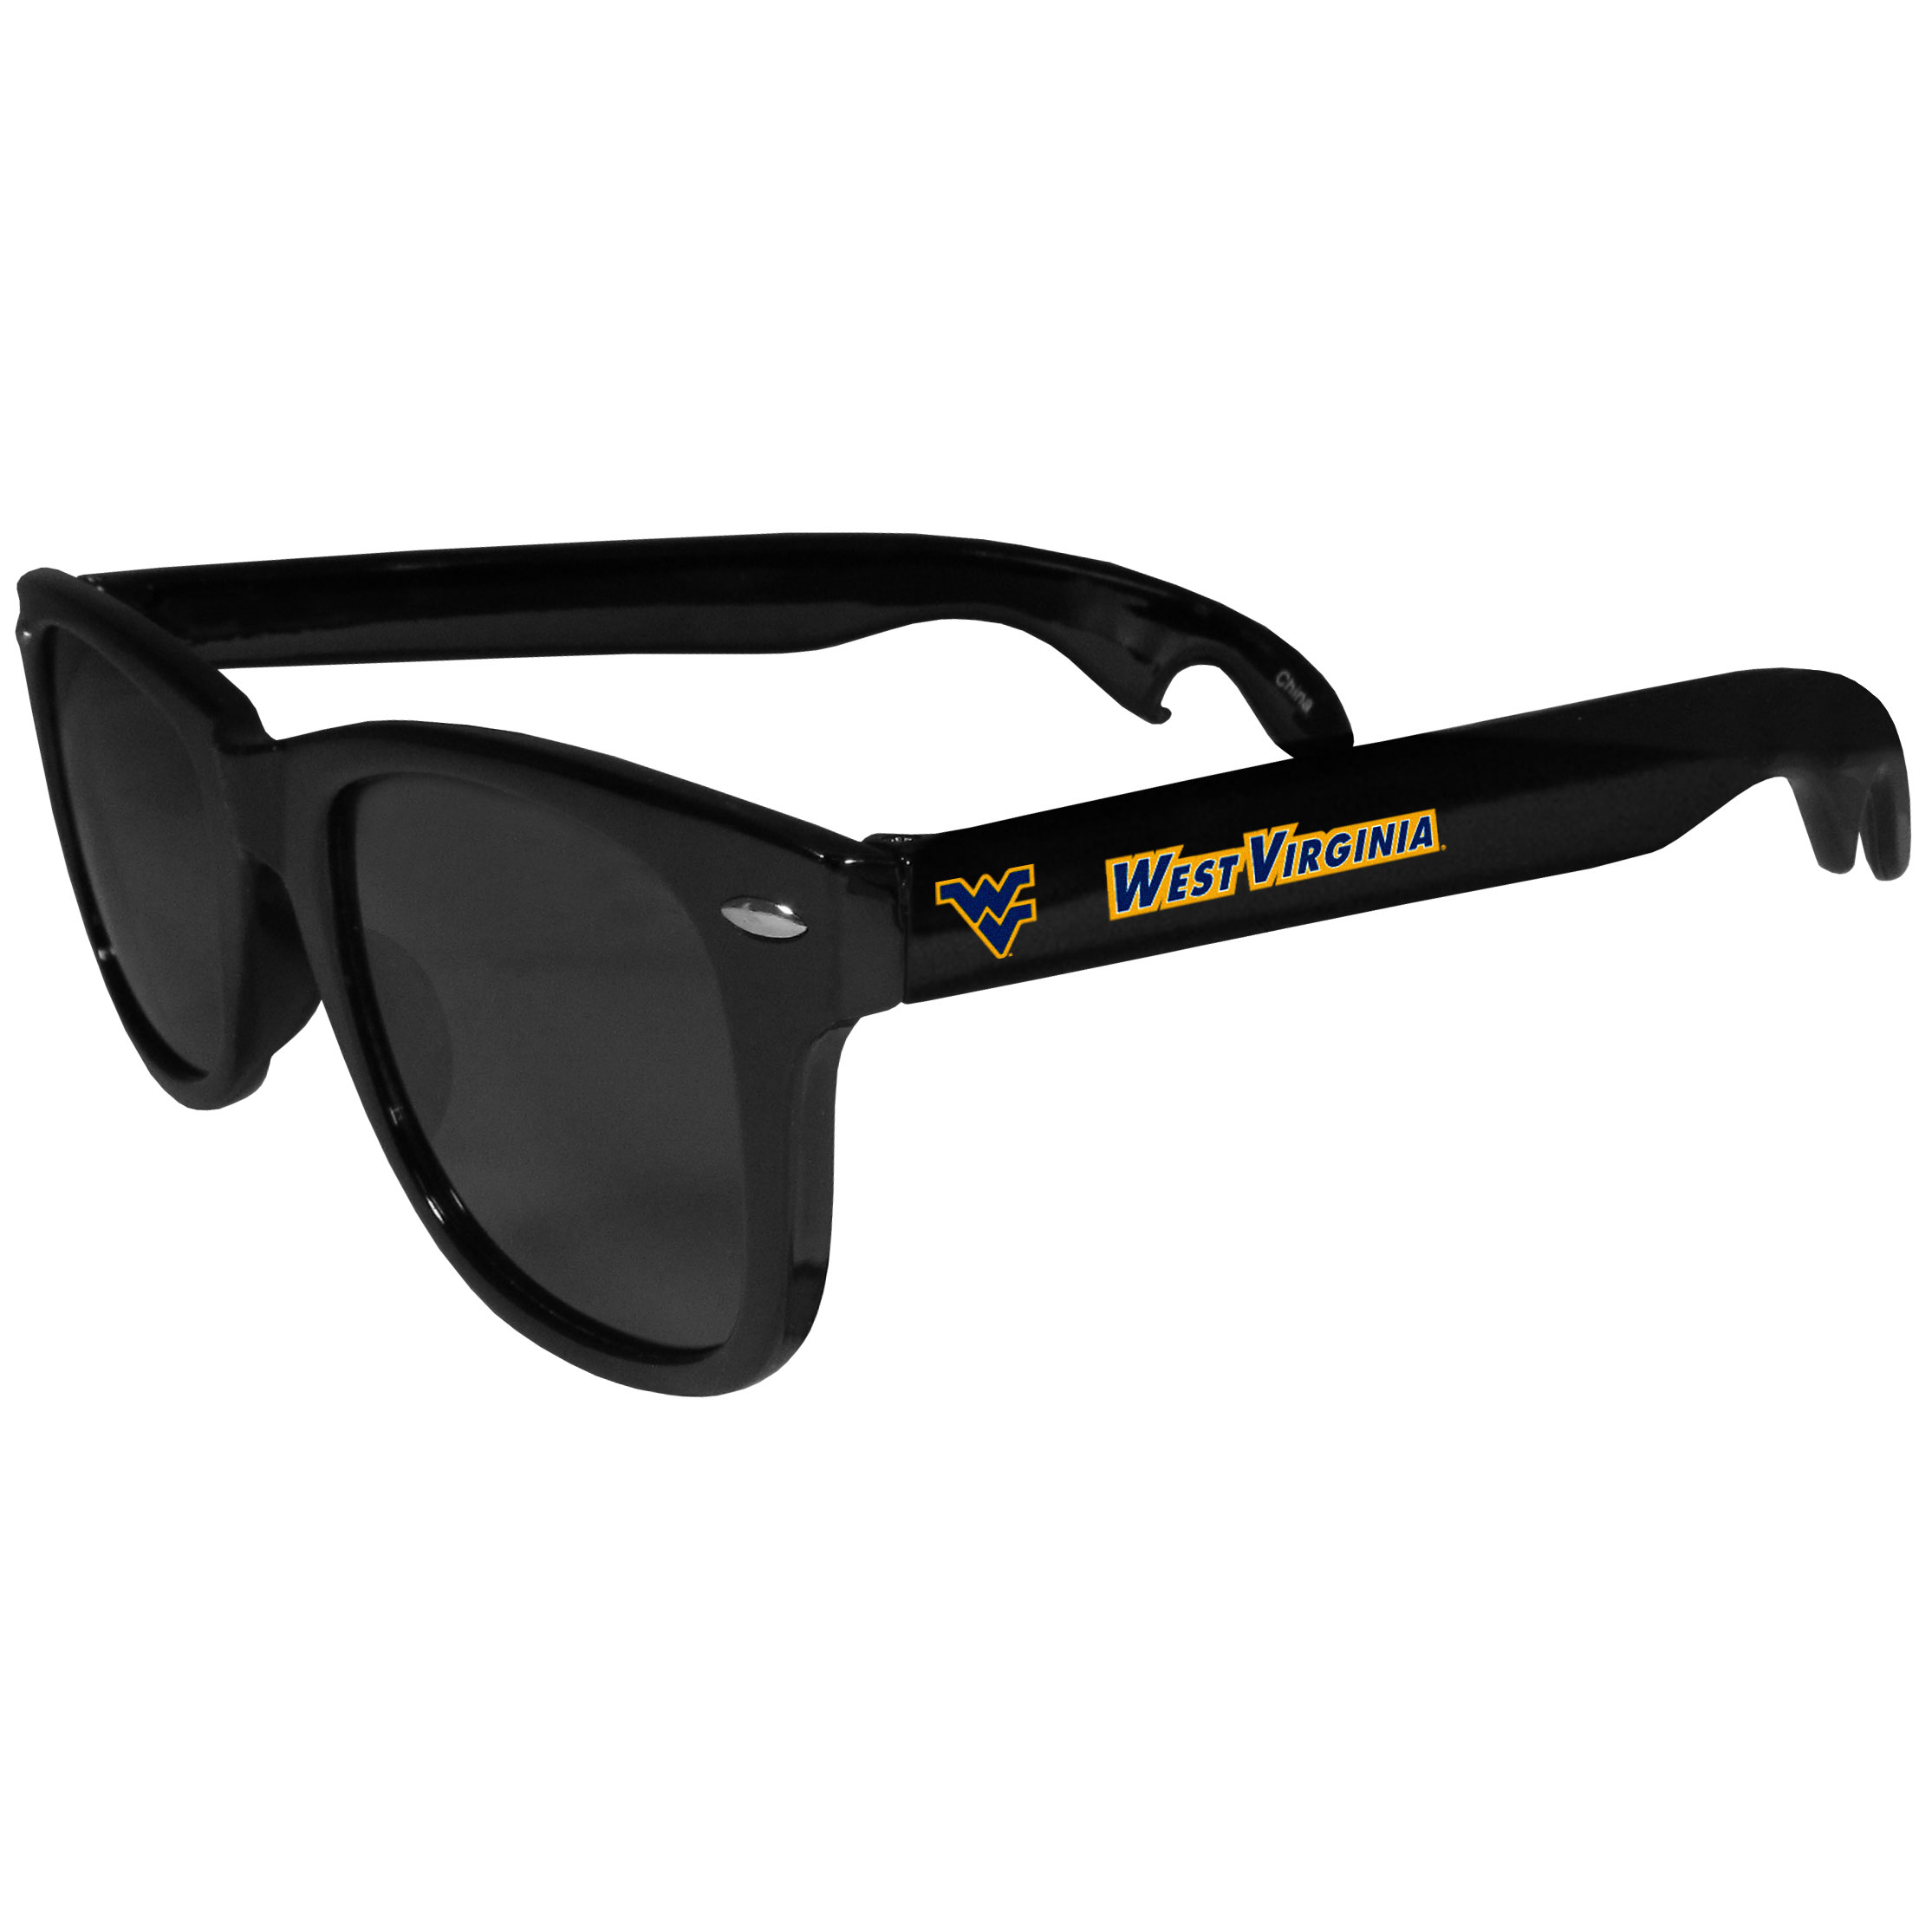 W. Virginia Mountaineers Beachfarer Bottle Opener Sunglasses - Seriously, these sunglasses open bottles! Keep the party going with these amazing W. Virginia Mountaineers bottle opener sunglasses. The stylish retro frames feature team designs on the arms and functional bottle openers on the end of the arms. Whether you are at the beach or having a backyard BBQ on game day, these shades will keep your eyes protected with 100% UVA/UVB protection and keep you hydrated with the handy bottle opener arms.